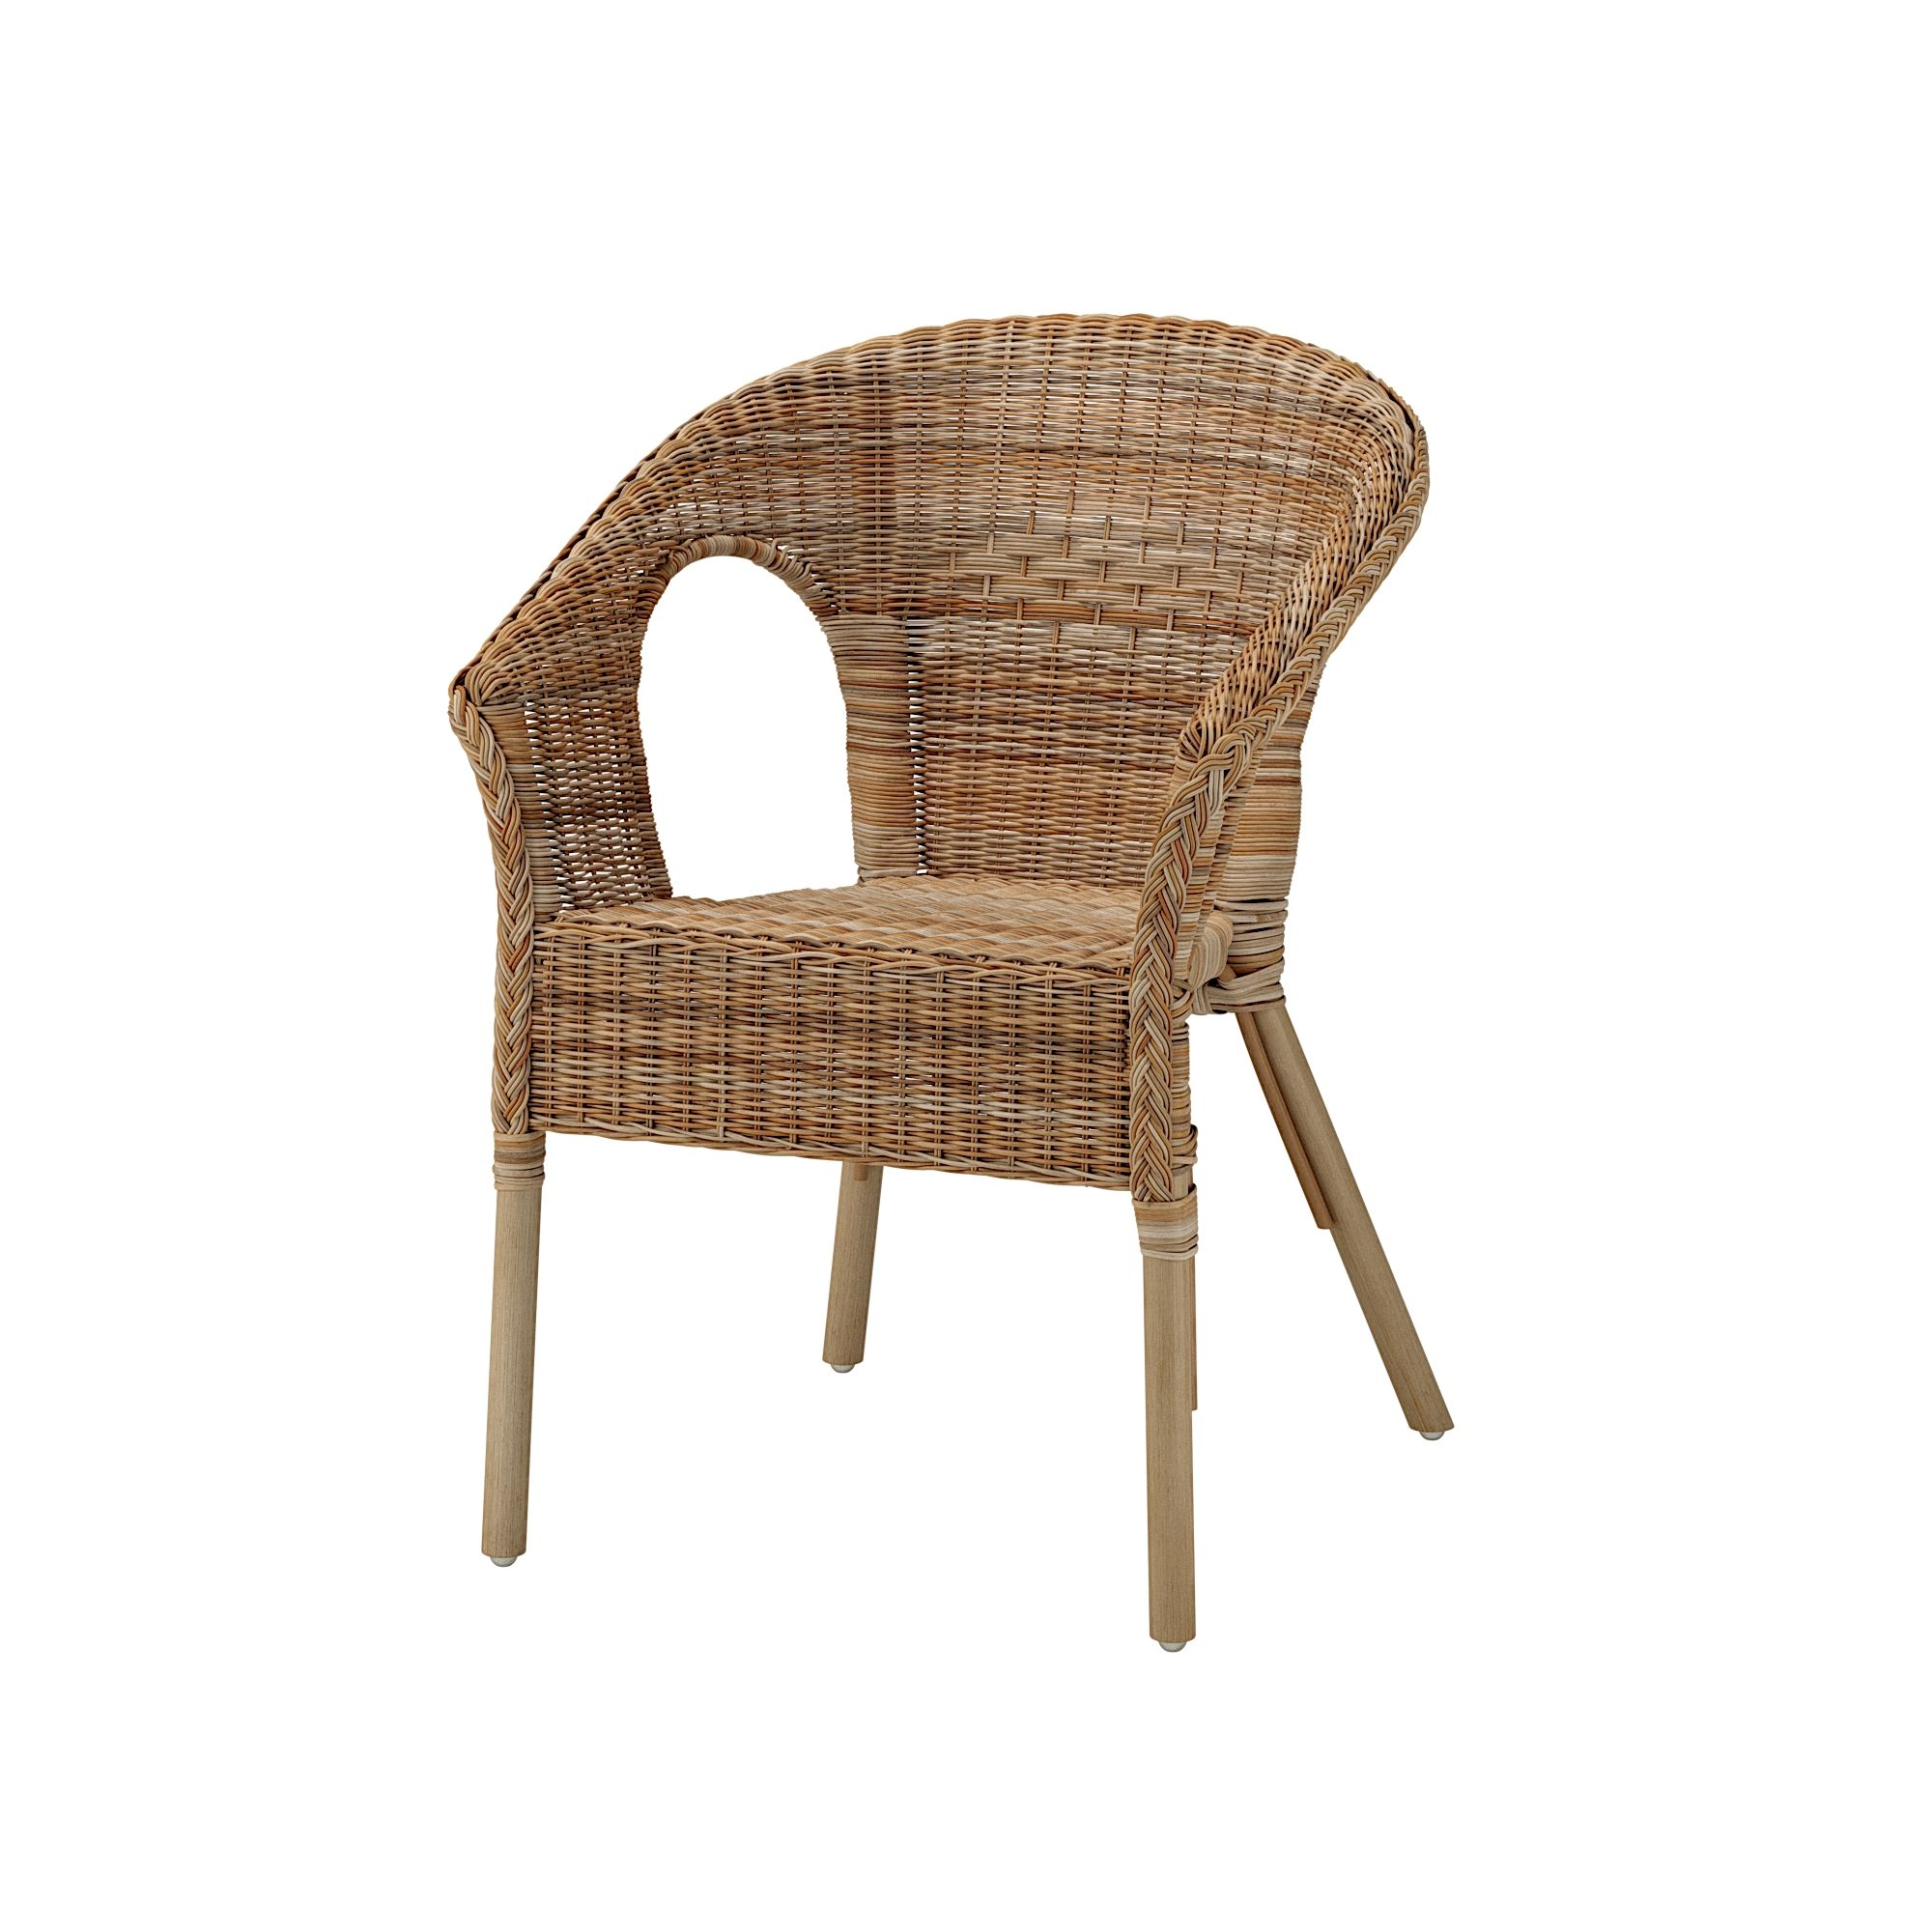 ikea agen rattan bamboo armchair in 2019 rattan armchair wicker chairs ikea armchair. Black Bedroom Furniture Sets. Home Design Ideas